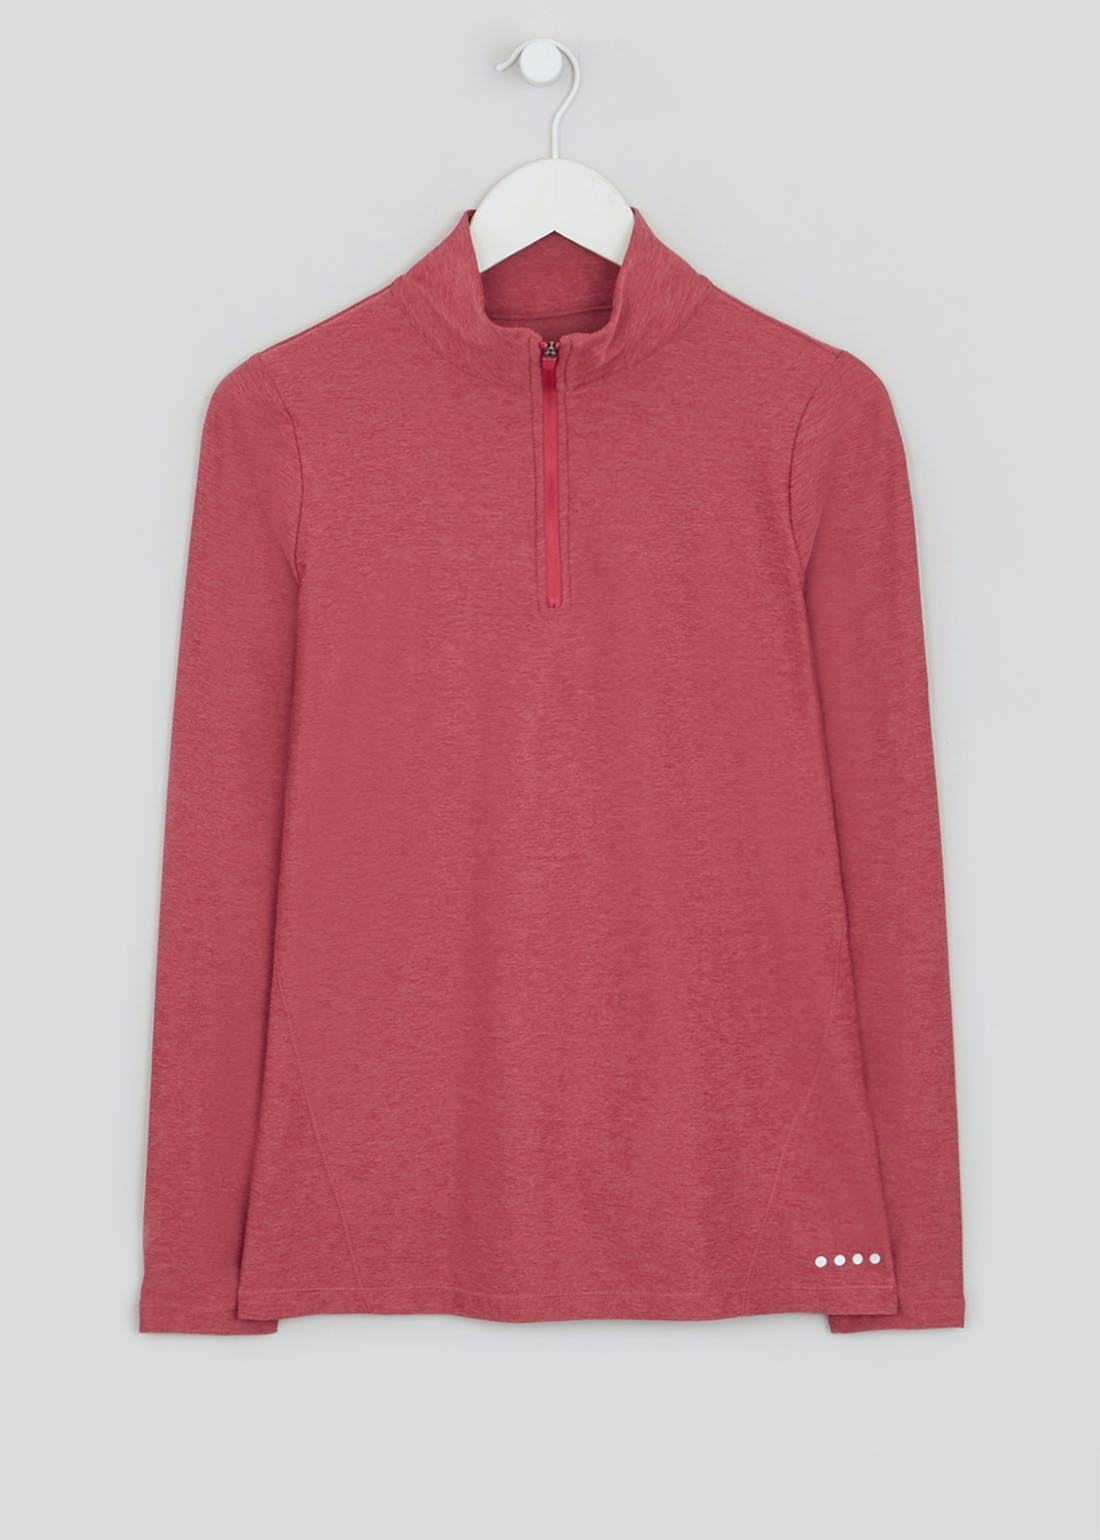 Souluxe Pink Half Zip Long Sleeve Gym Top